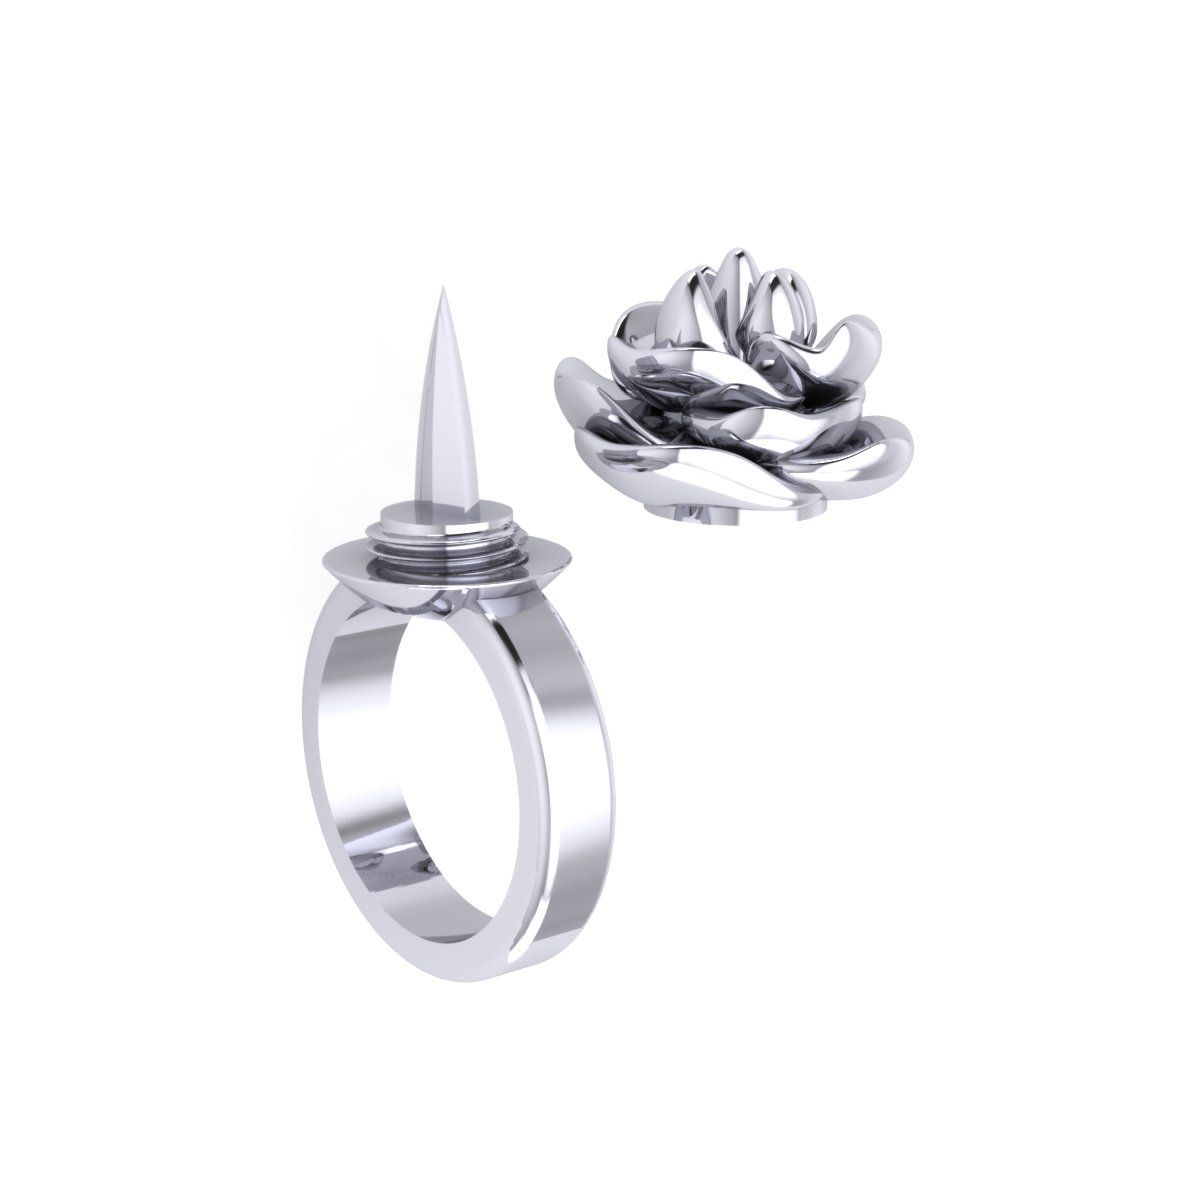 The Defender Ring Is A Modern Self Defense Weapon For Women Developed As A Ring With A Concealed Blade Weapon Jewelry Jewelry Cute Jewelry